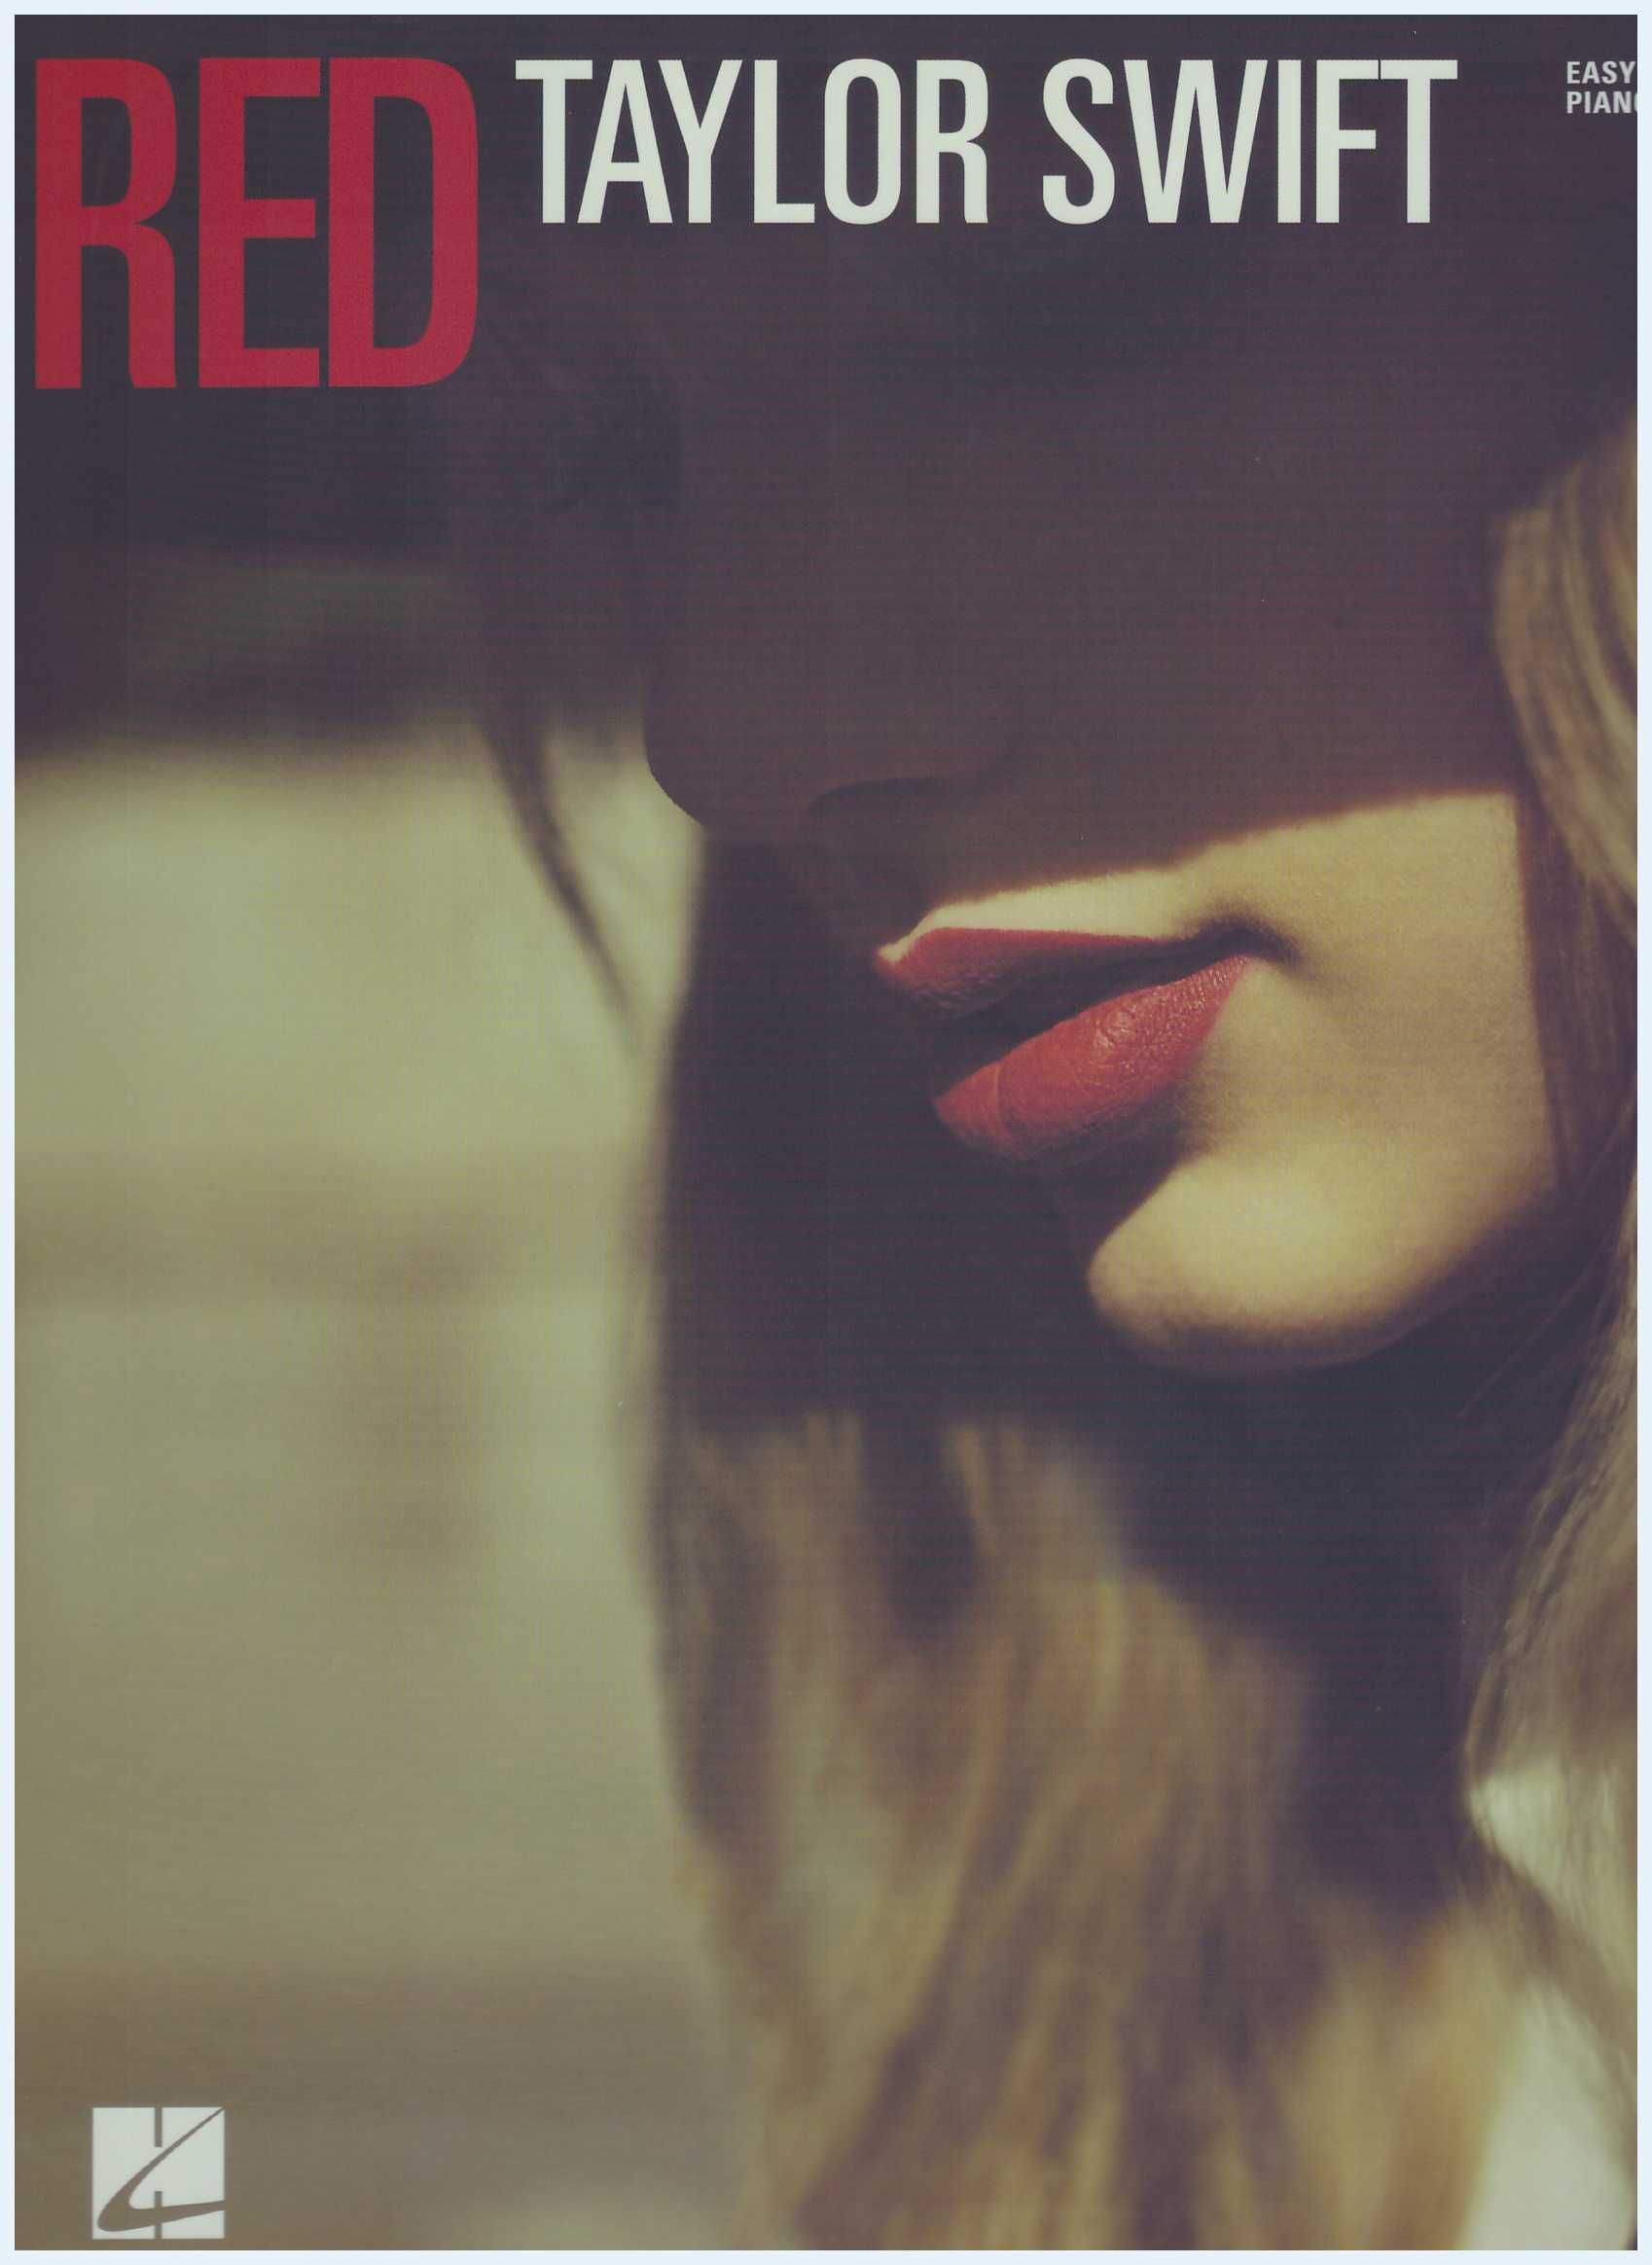 Taylor Swift Red / Easy Piano / PVG Book / Piano Book / Pop Song Book / Vocal Book / Voice Book